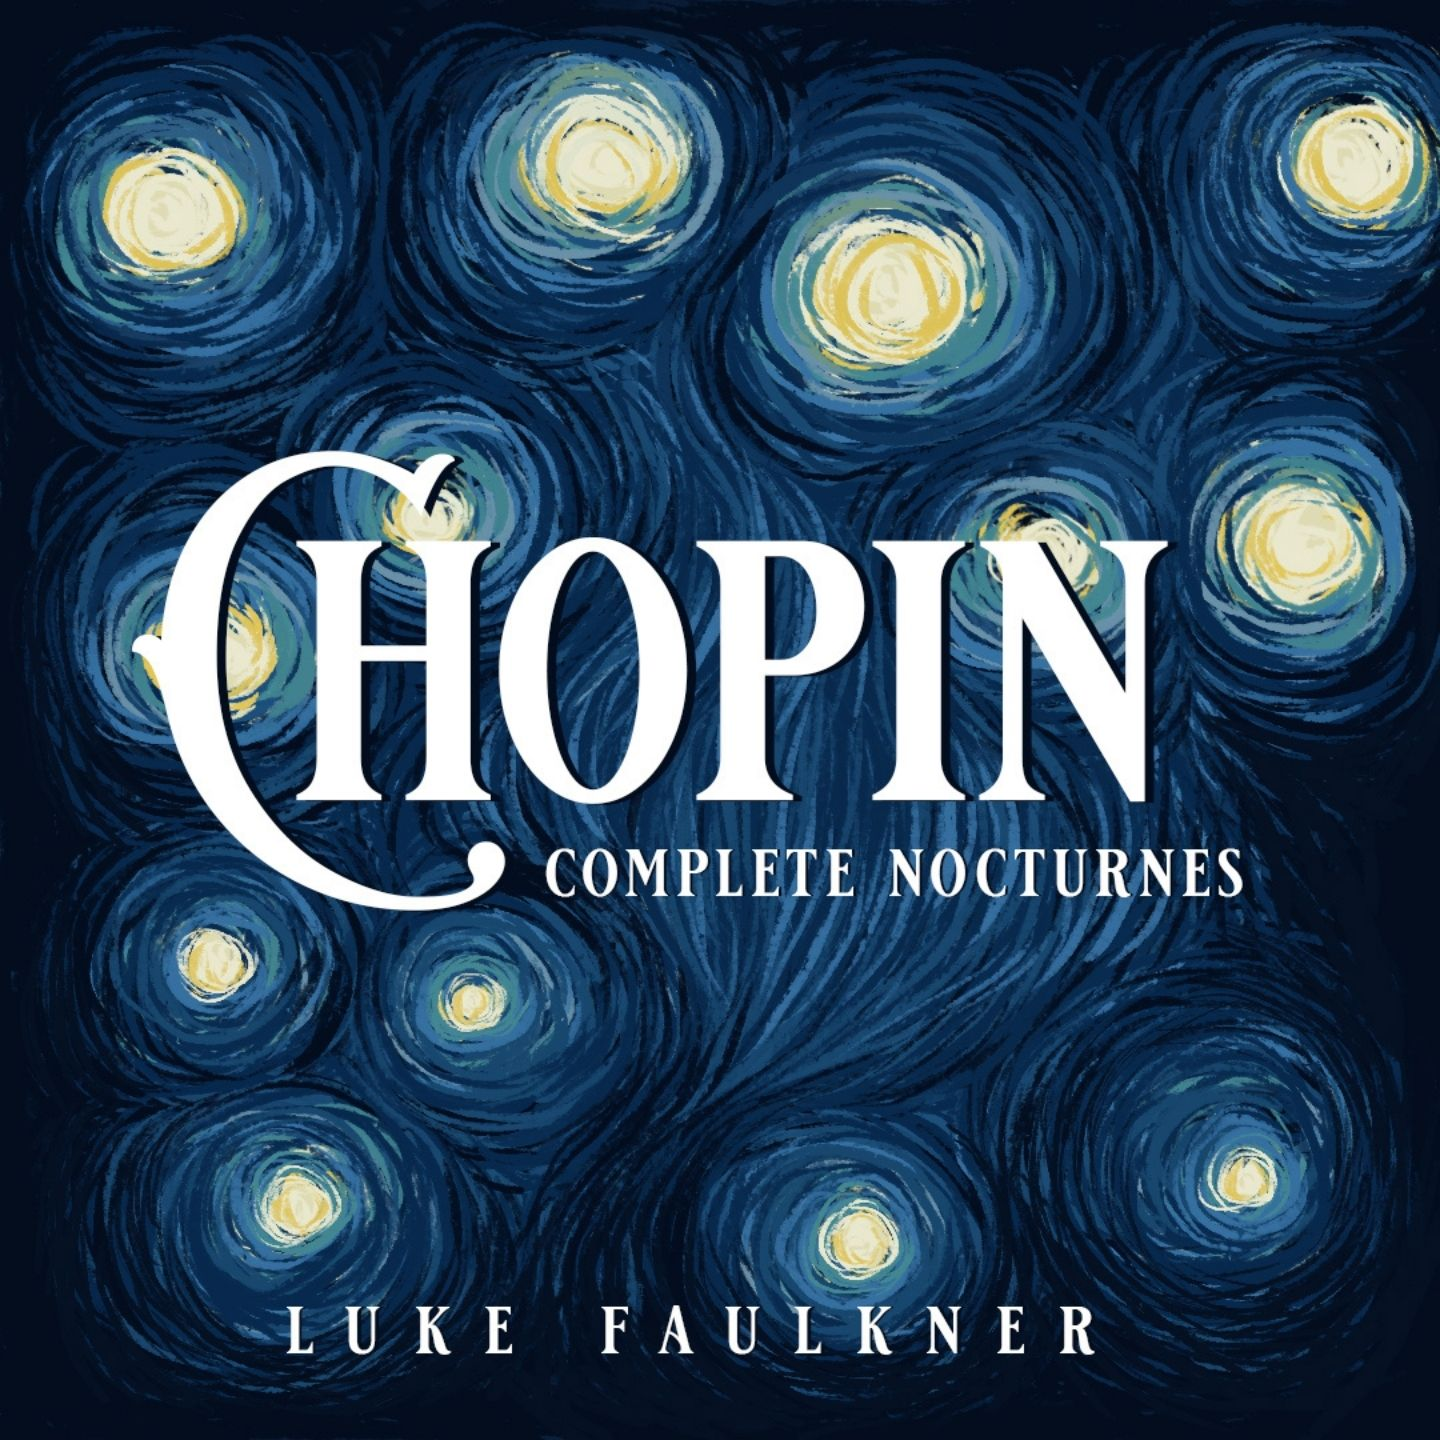 Chopin: Complete Nocturnes